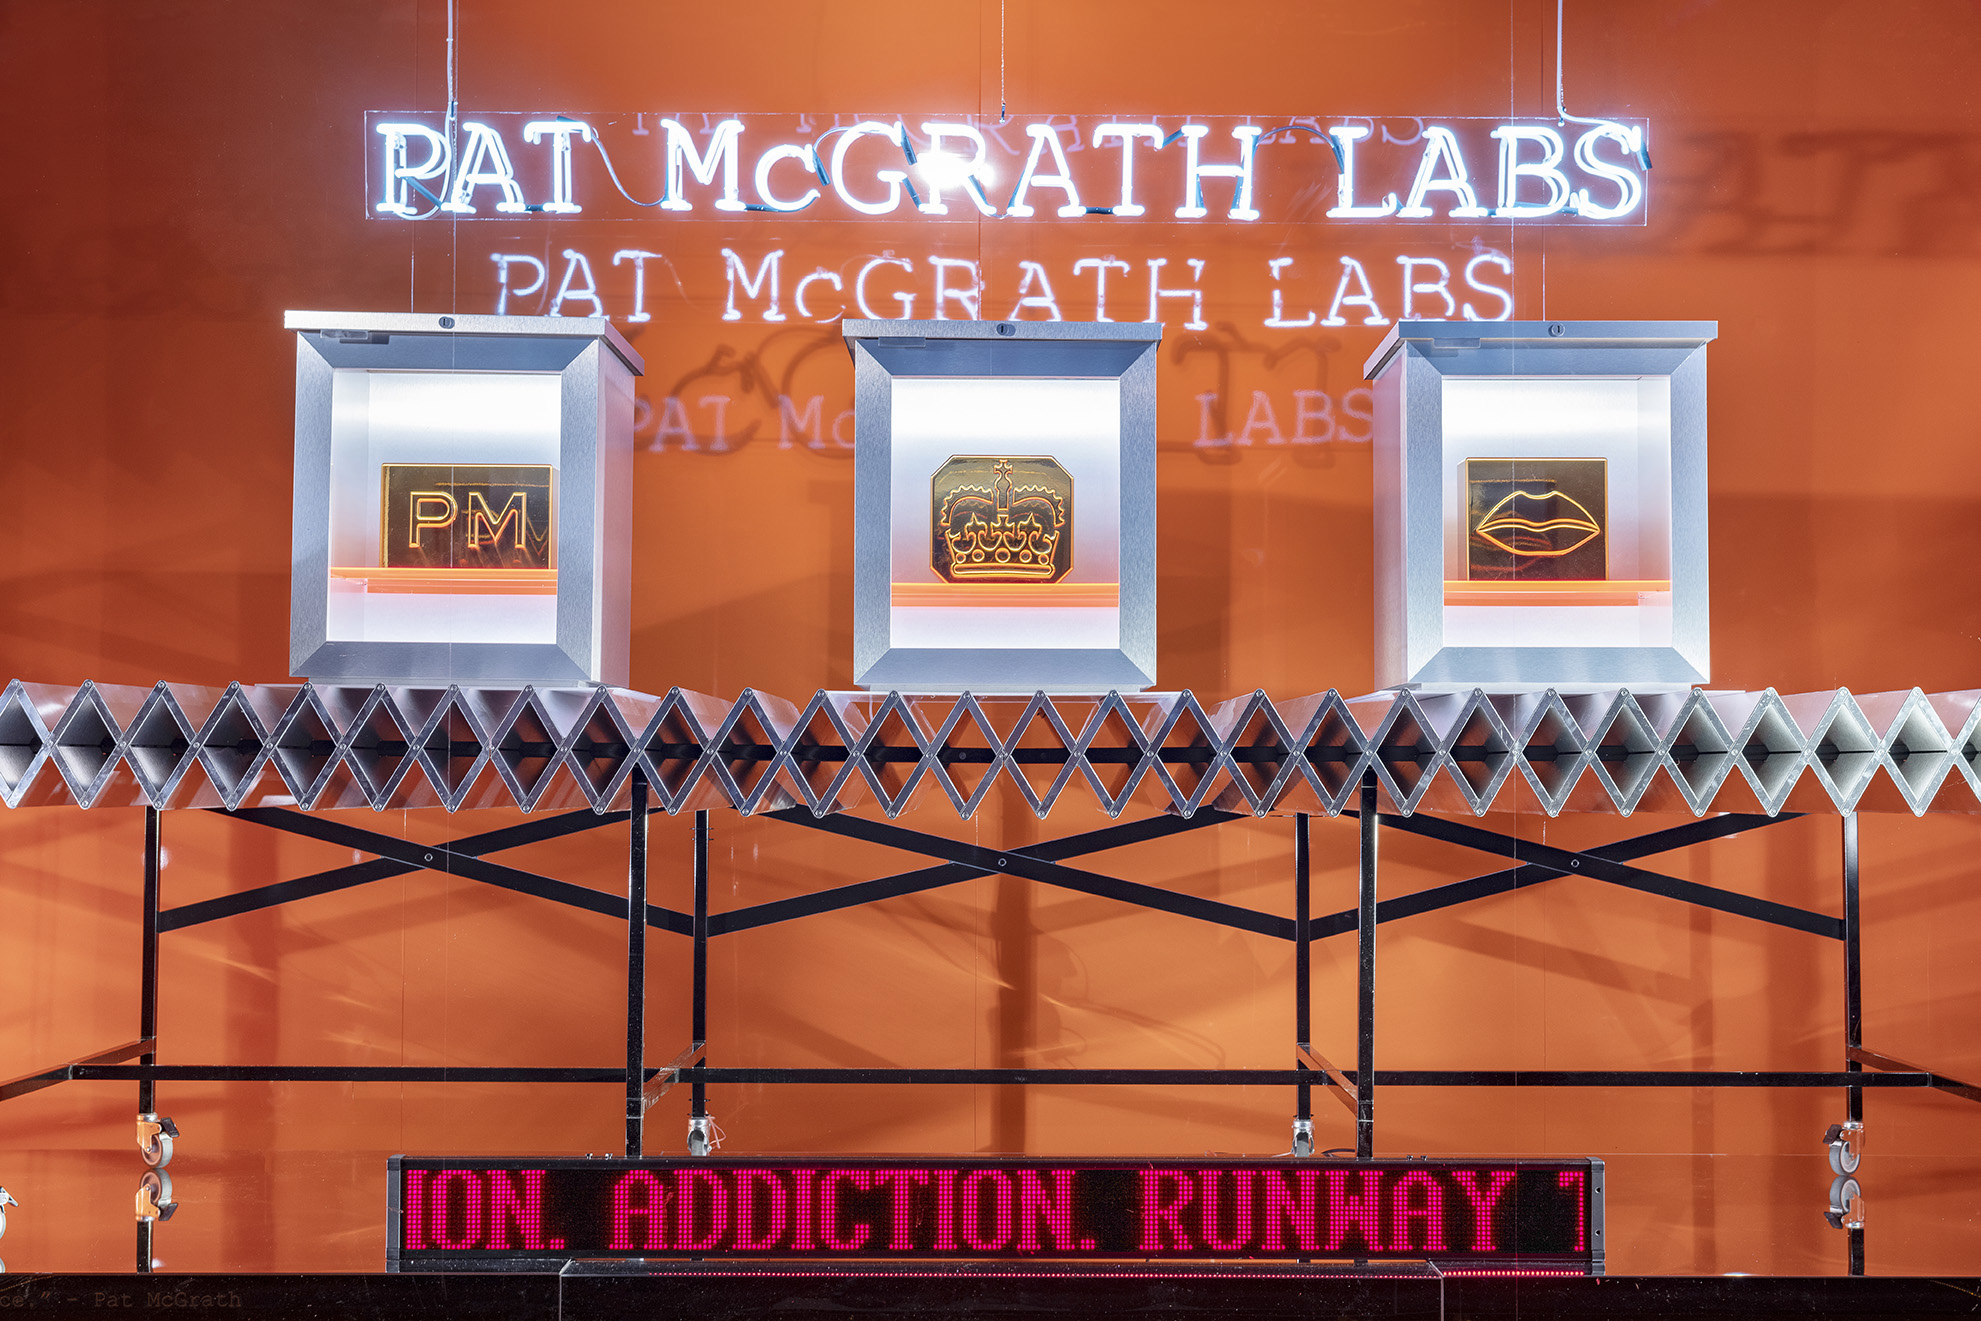 Pat McGrath, Selfridges cabinets by Propability .jpg